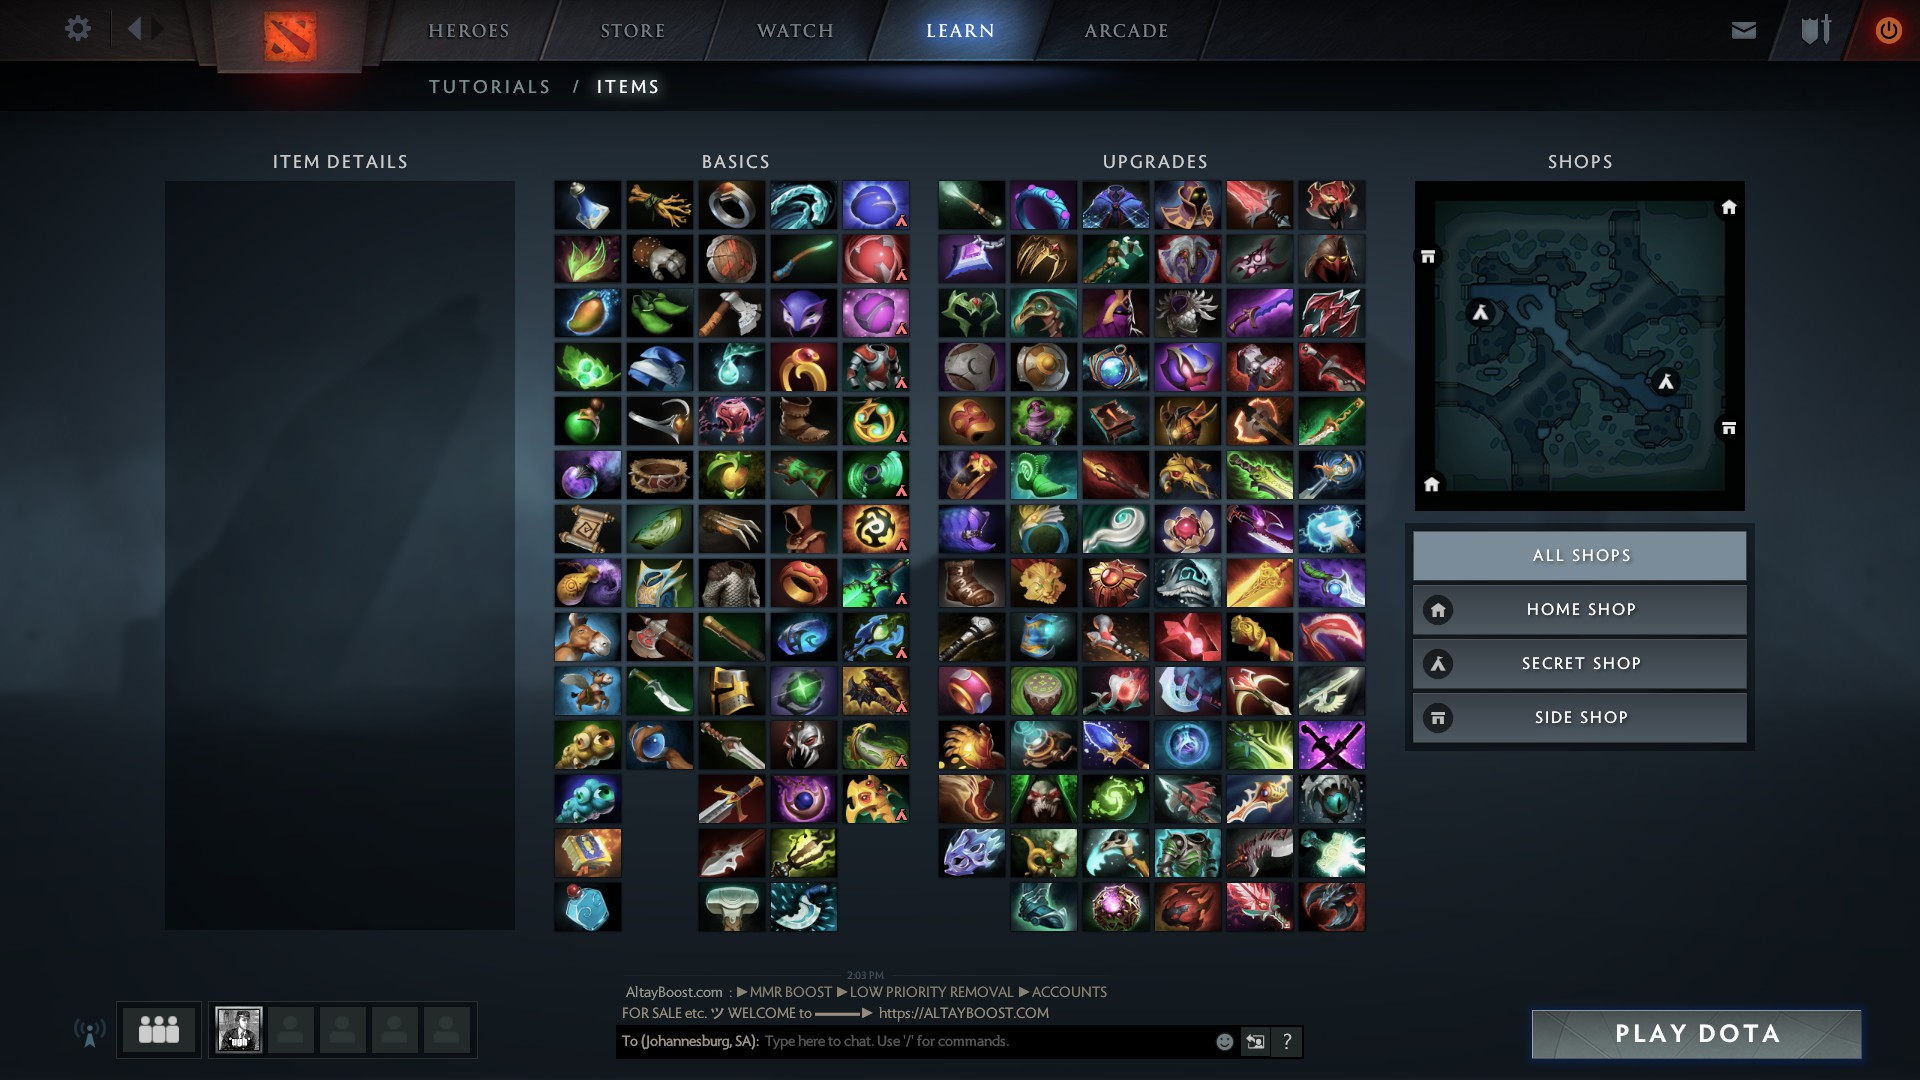 dota matchmaking idiots Dota matchmaking idiots - dota 2 matchmaking is broken :: dota 2 general  discussions dota 2 doesn t seem to care new a no-bullshit method start playing .